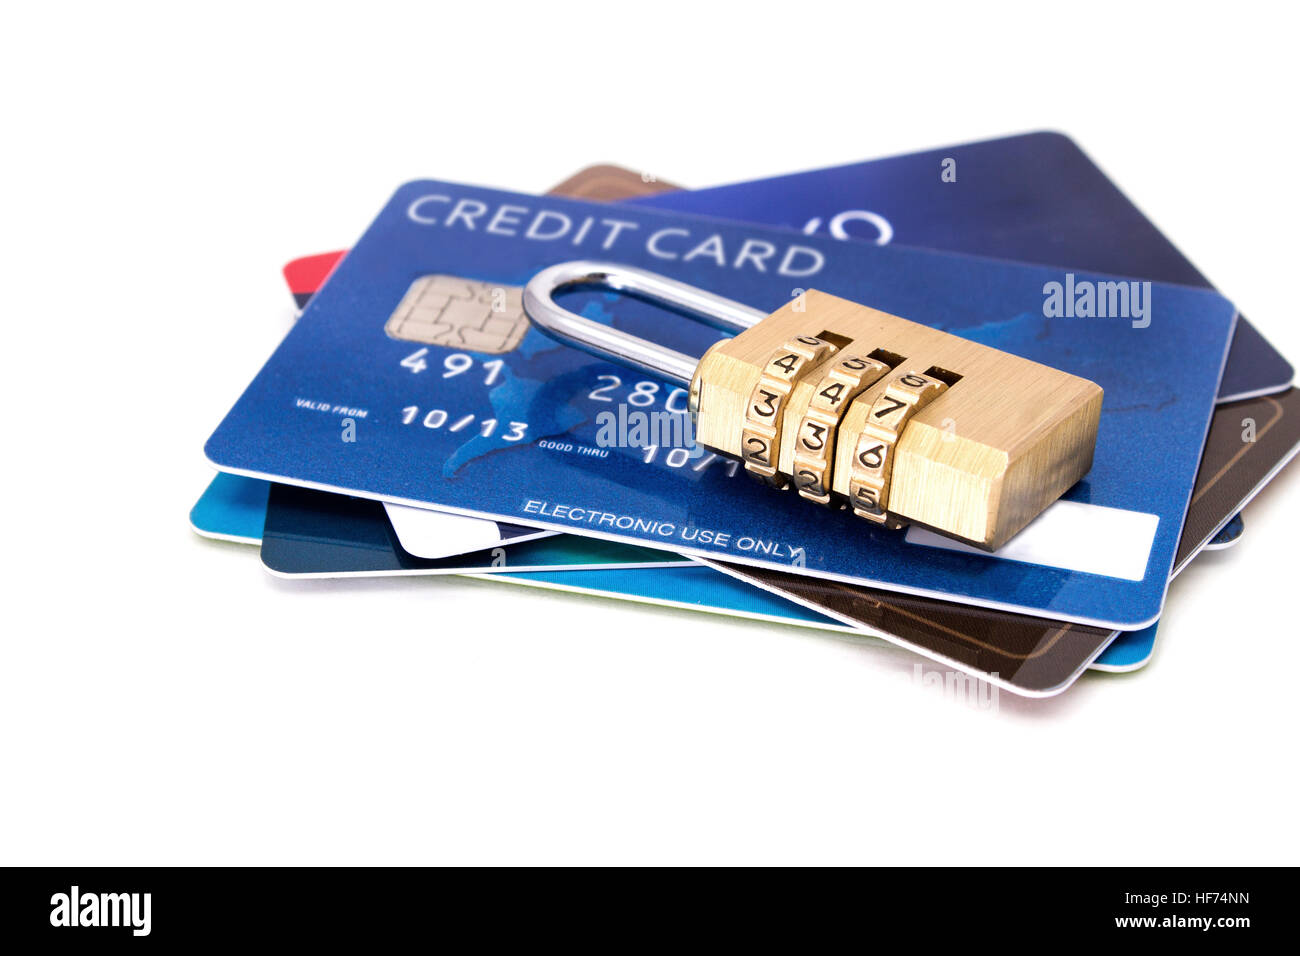 Credit cards and combination lock padlock. Credit card security concept - Stock Image